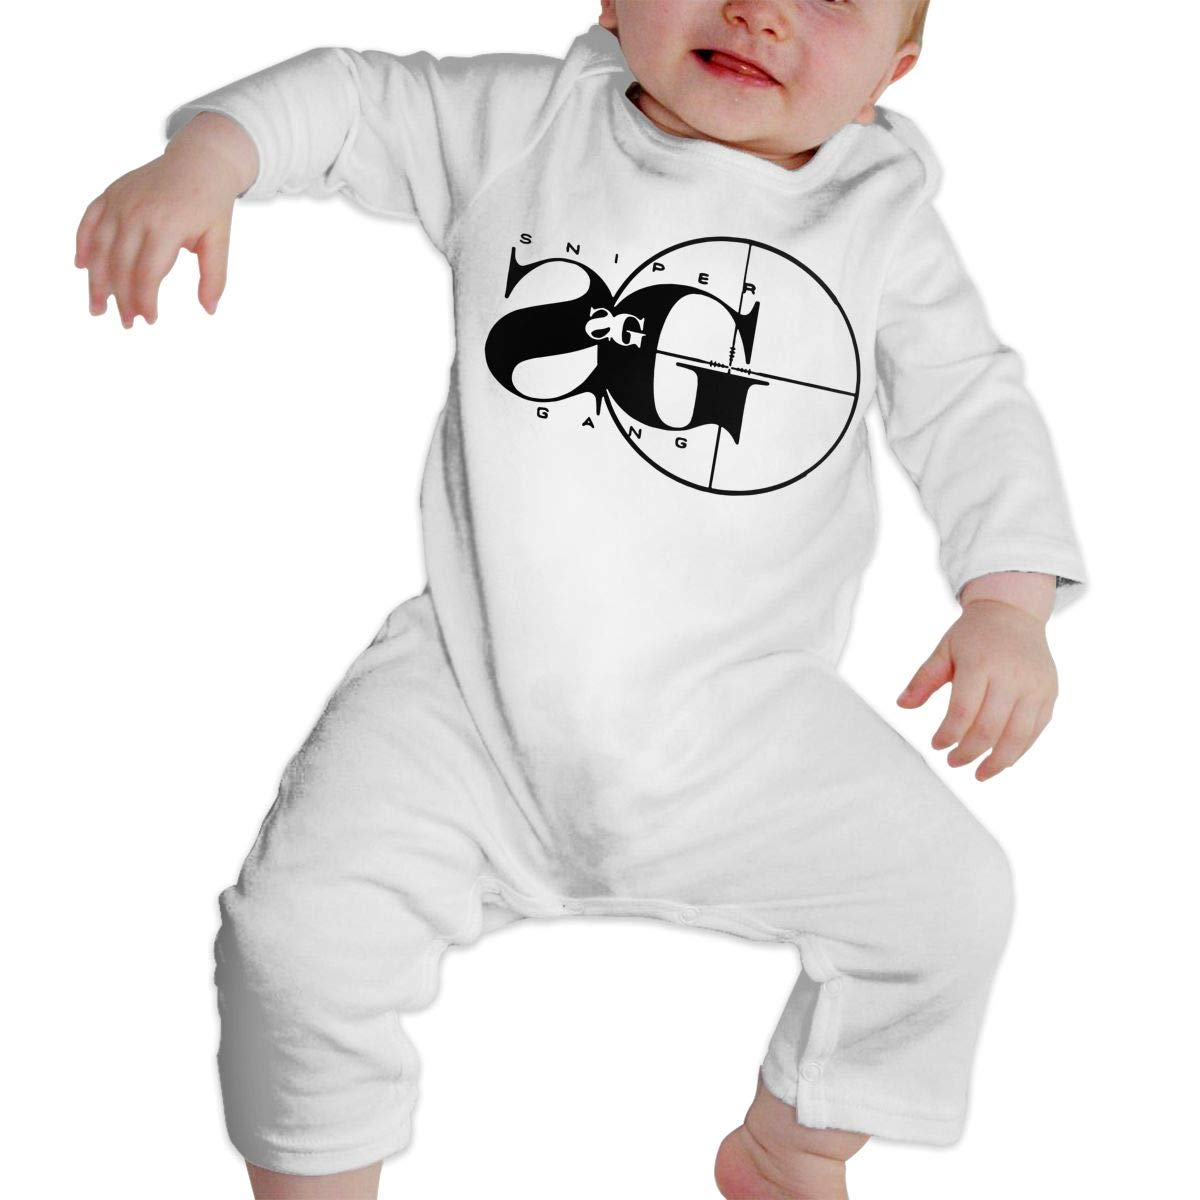 Sniper Gang Rap Music Unisex Long Sleeve Baby Gown Baby Bodysuit Unionsuit Footed Pajamas Romper Jumpsuit